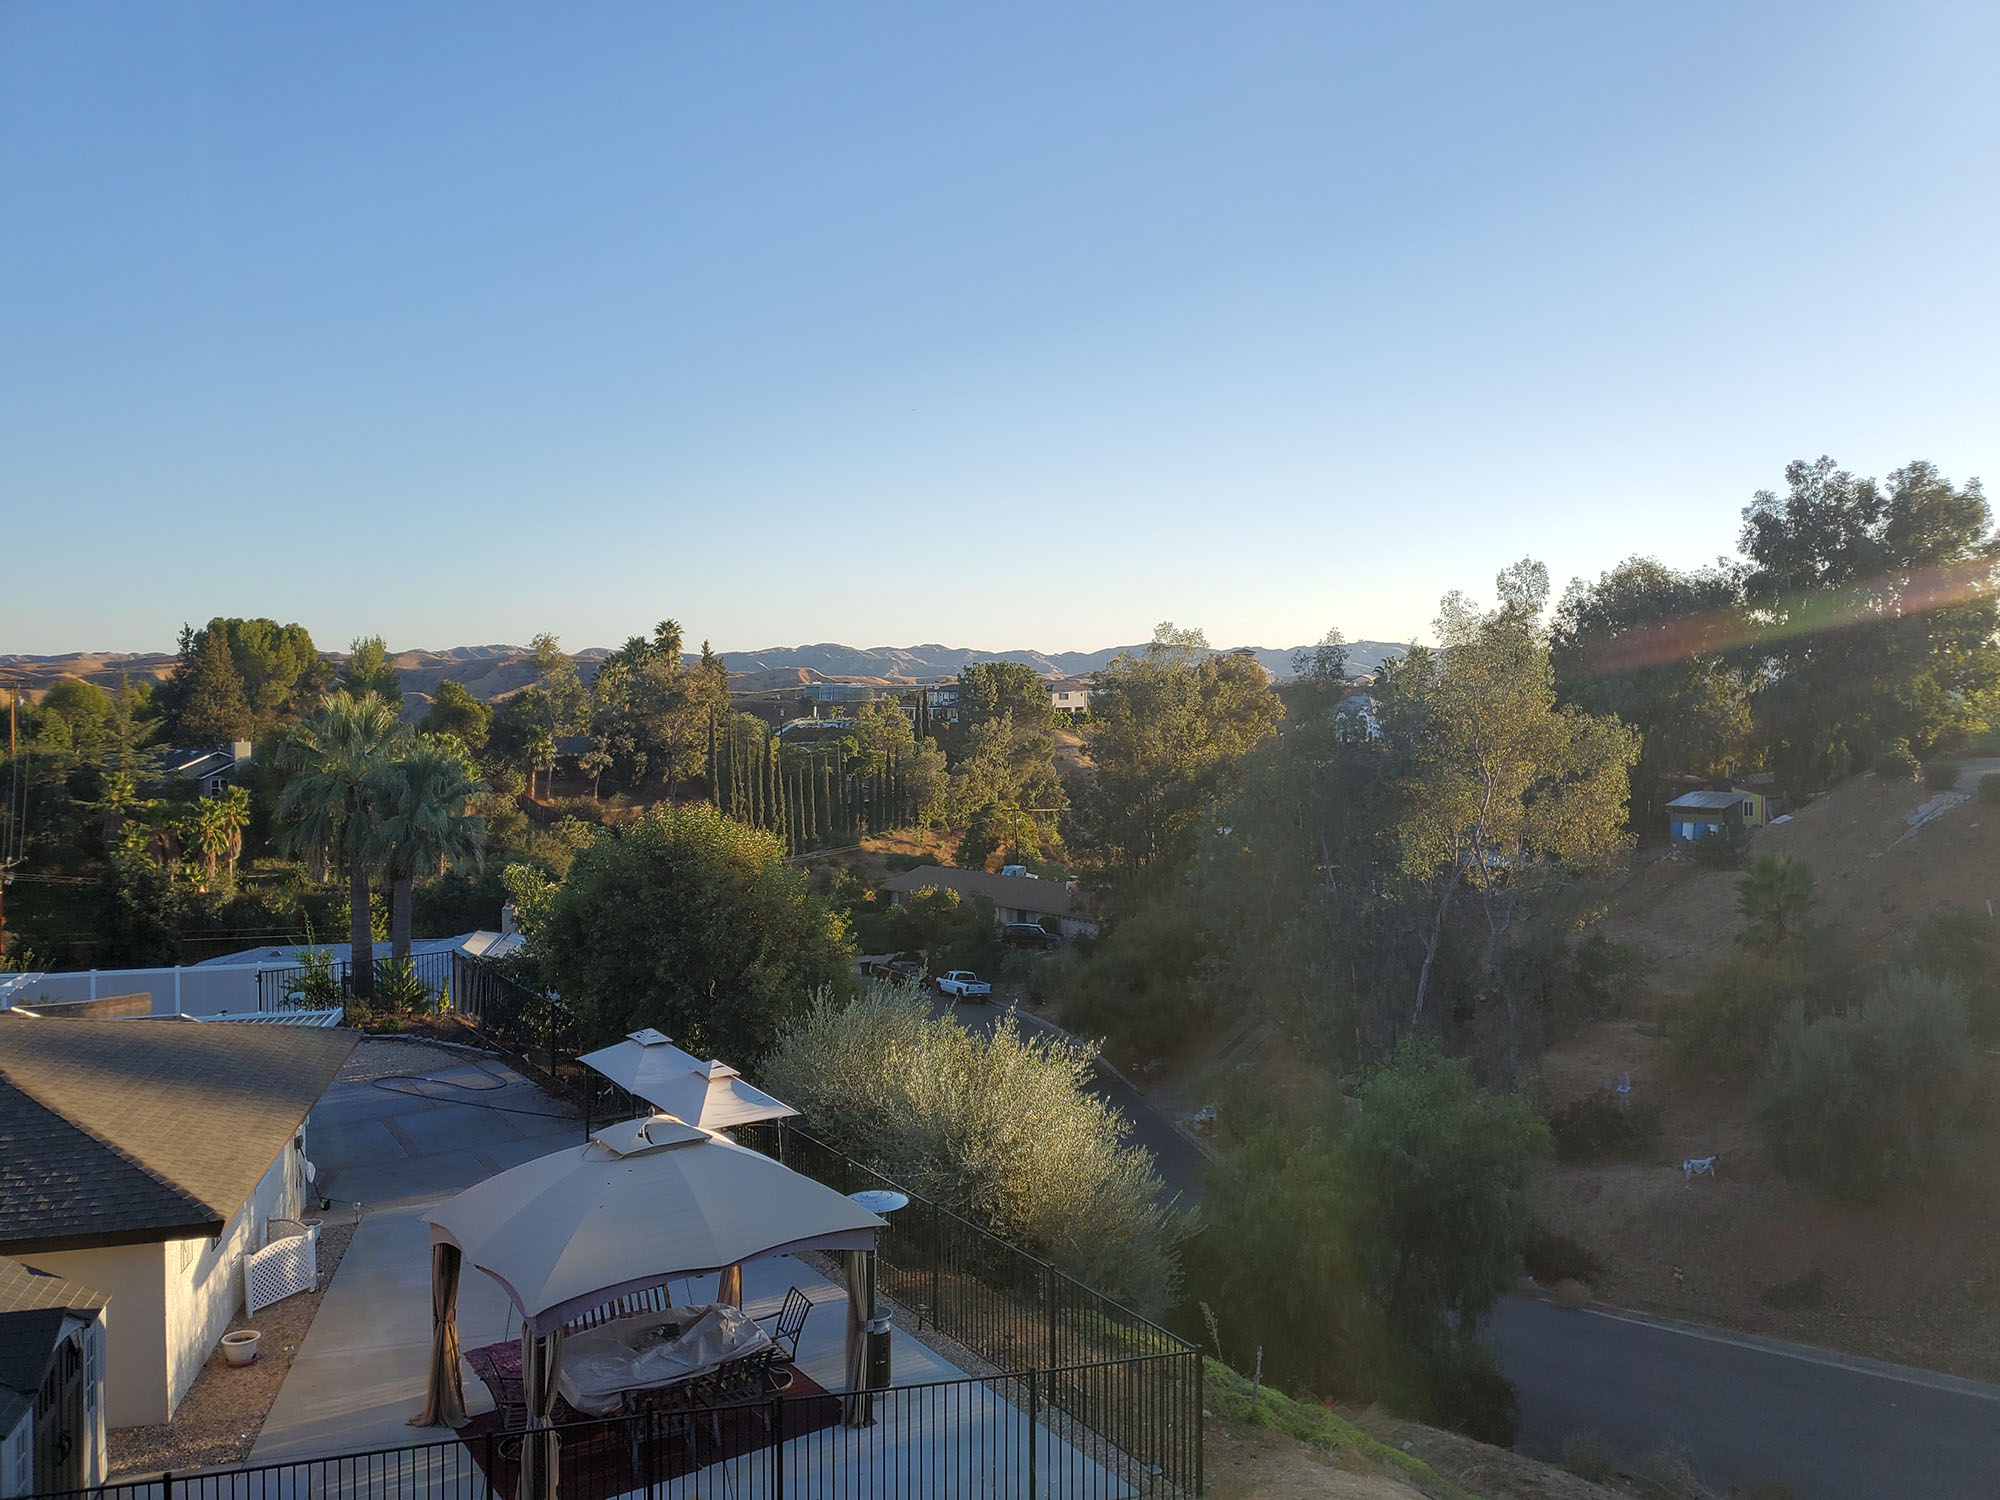 A photo of the view from the land for sale on 0 Bedford Dr., Redlands, CA 92373.